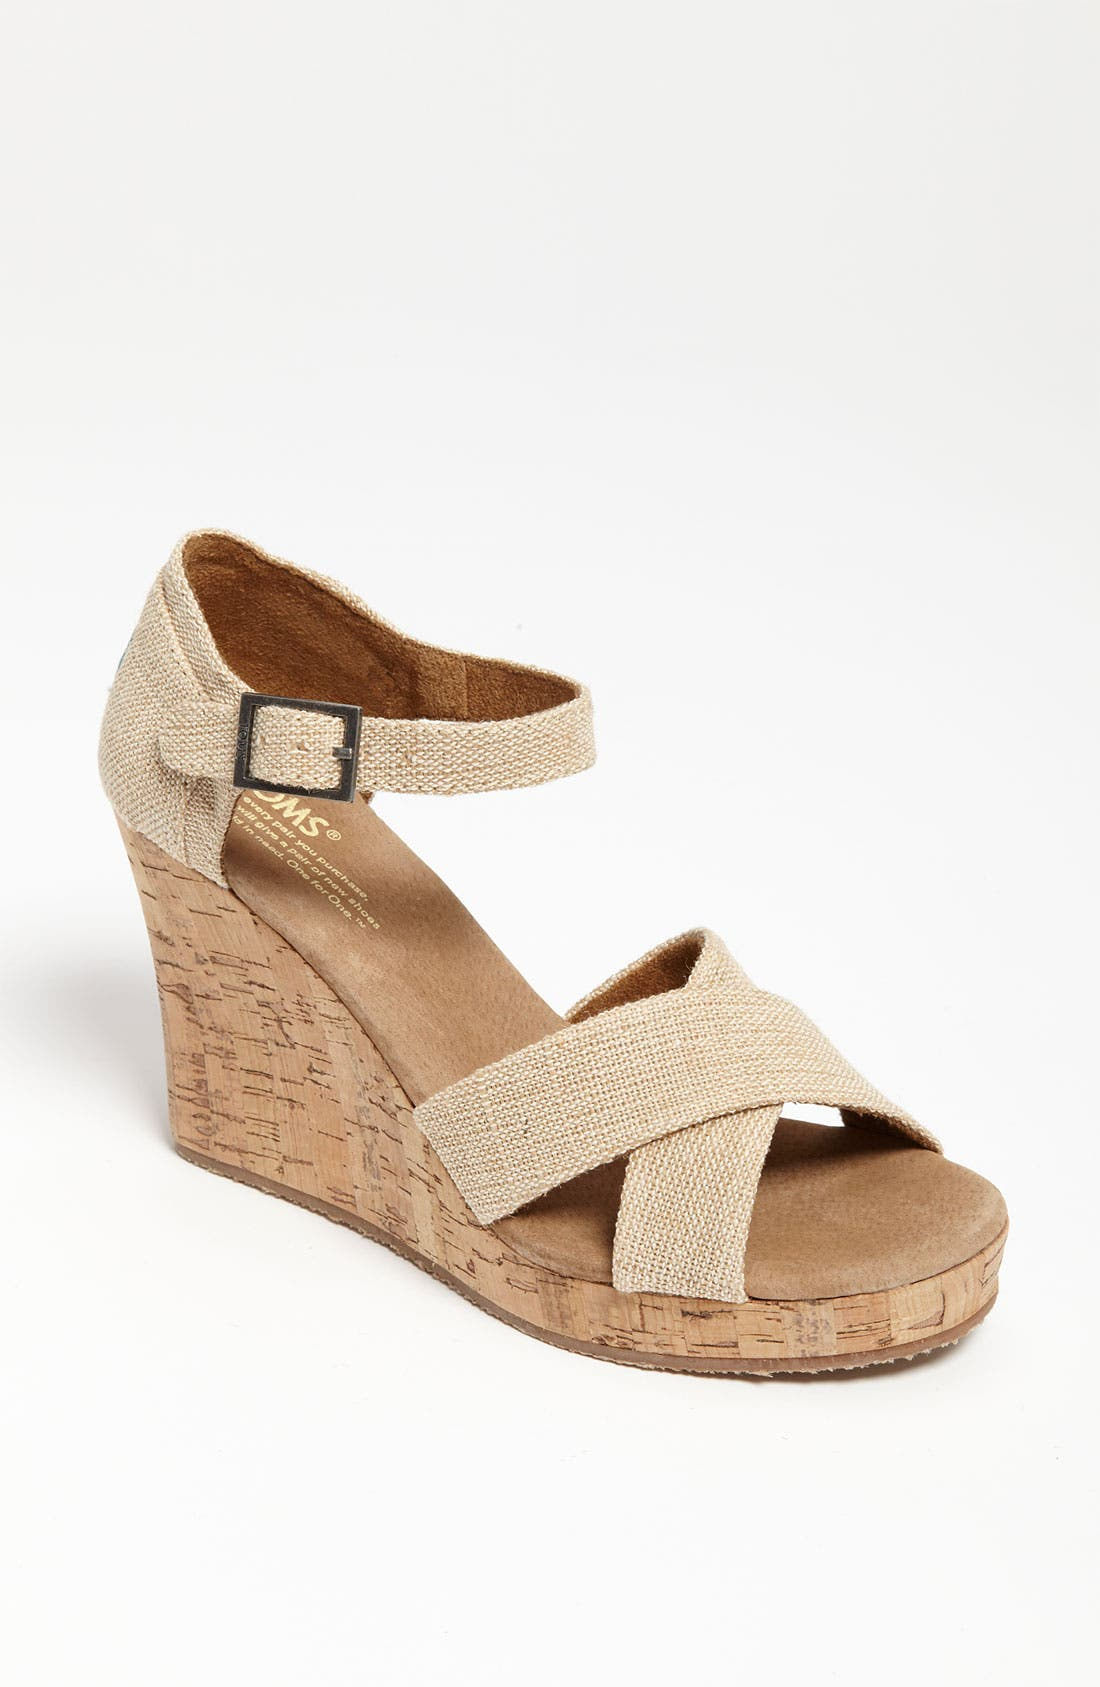 Alternate Image 1 Selected - TOMS 'Sierra' Wedge Sandal